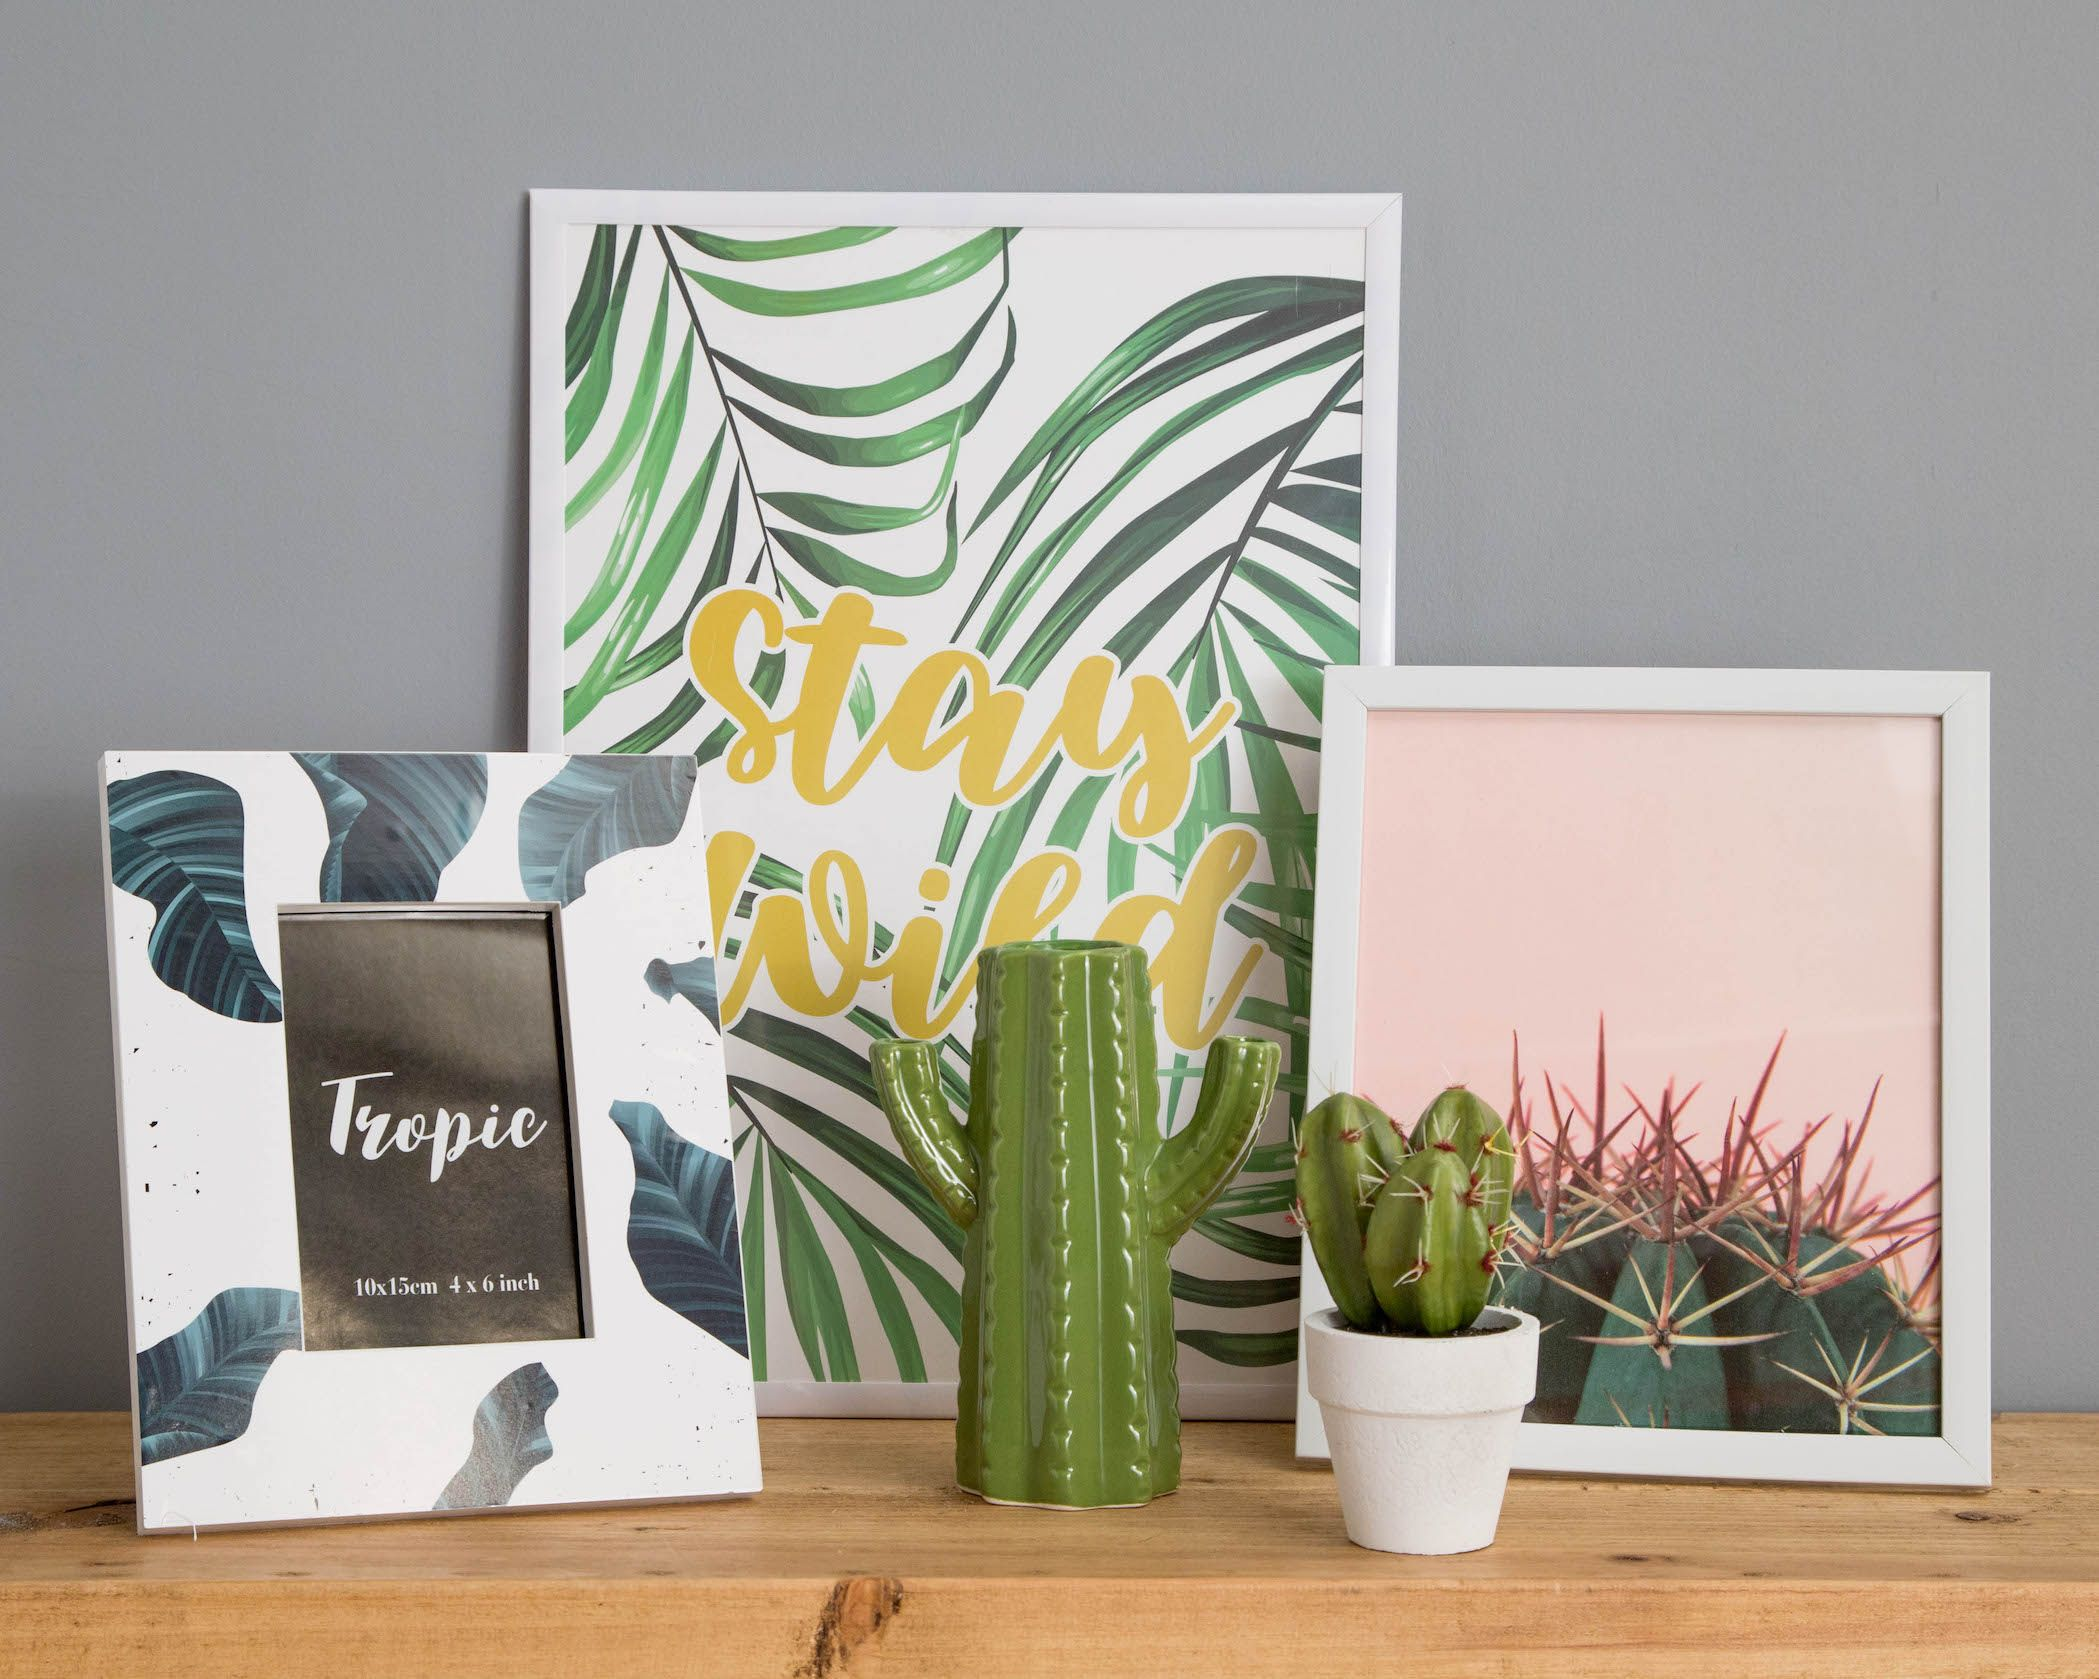 Transform a wall with Poundland's art prints and frames for just £1